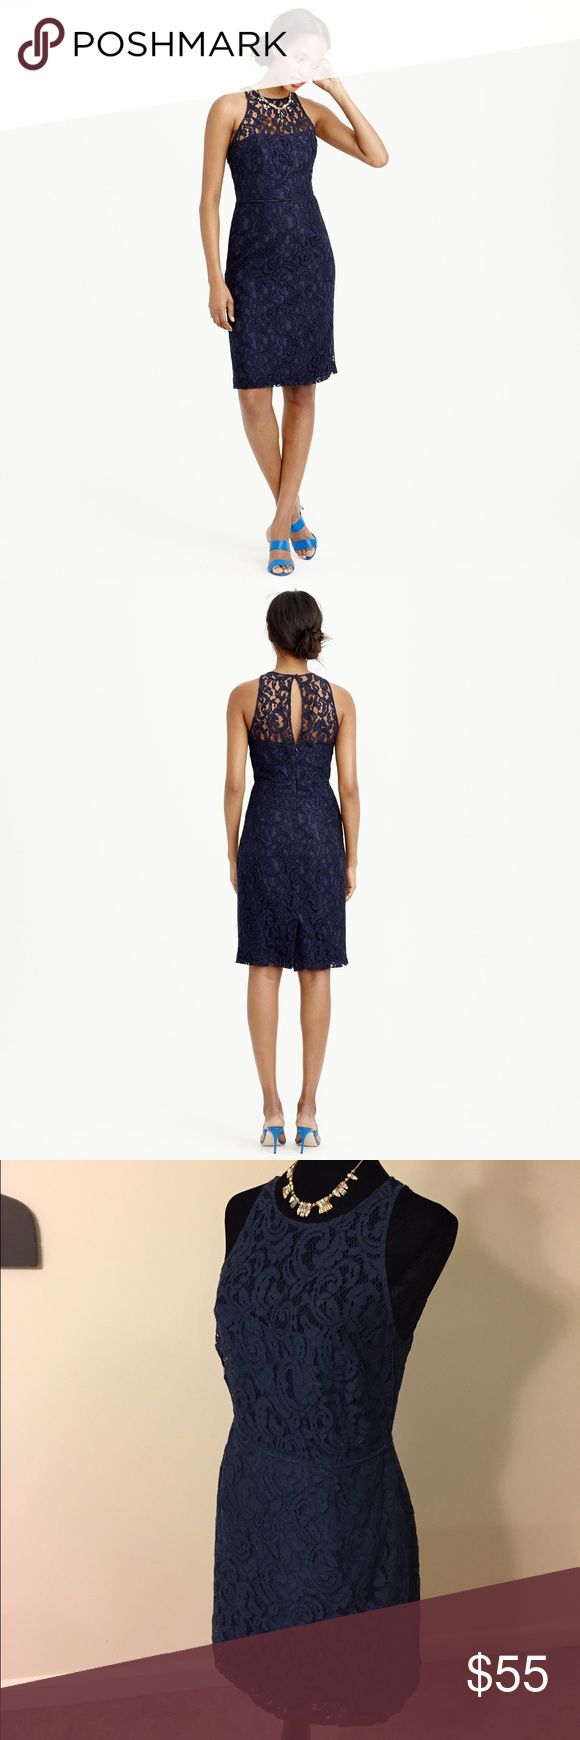 FREE SHIPPING! J. Crew Navy Lace Dress Gorgeous navy blue lace dress from J. Crew. Perfect for a summer wedding or shower! Excellent condition. Comment when ready to buy and I'll remove $6 to cover shipping costs. J. Crew Dresses Midi